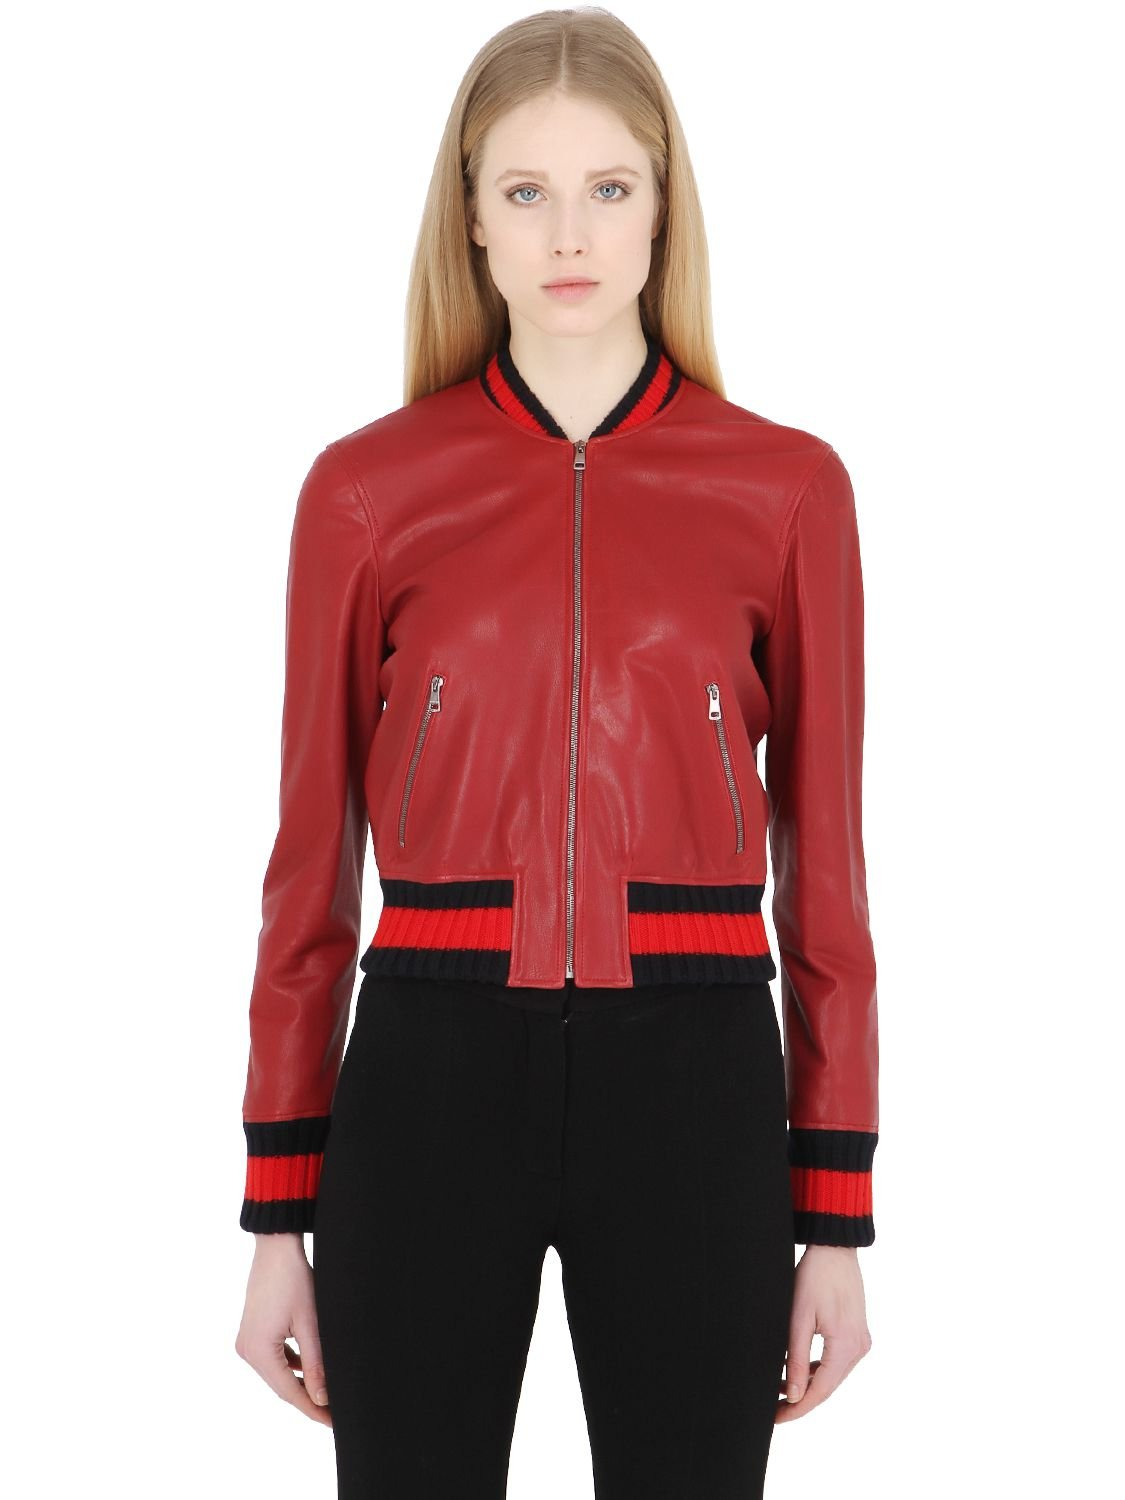 Gucci Embroidered Leather Bomber Jacket In Red  Lyst